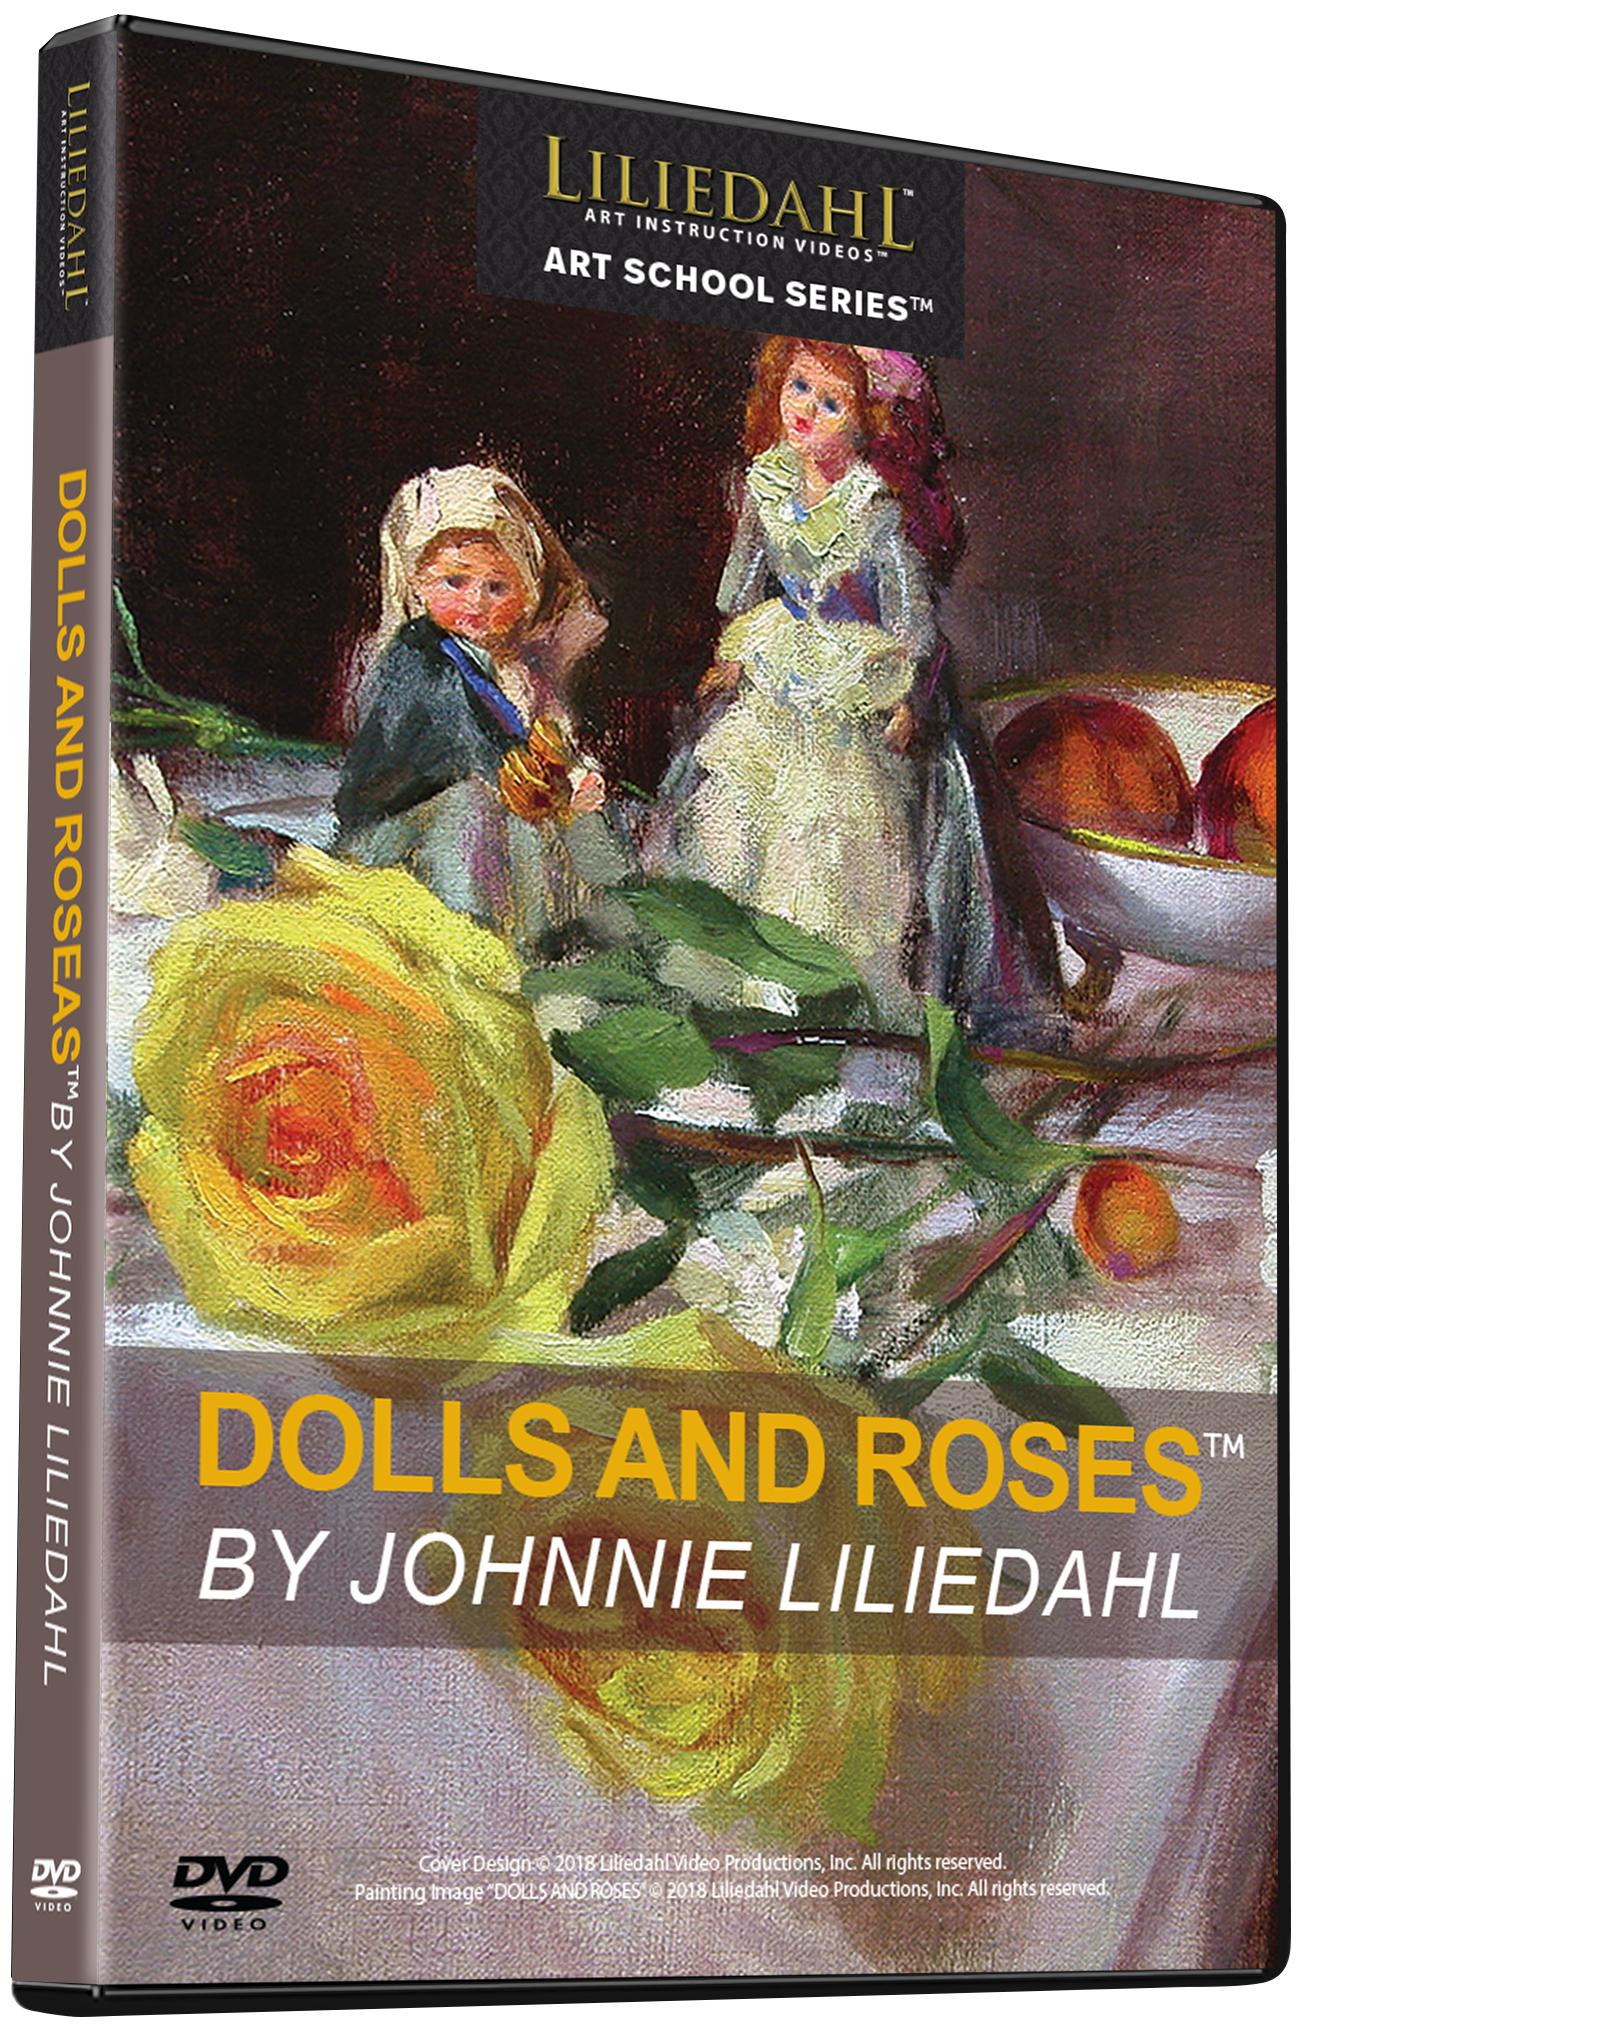 Johnnie Liliedahl: Dolls and Roses